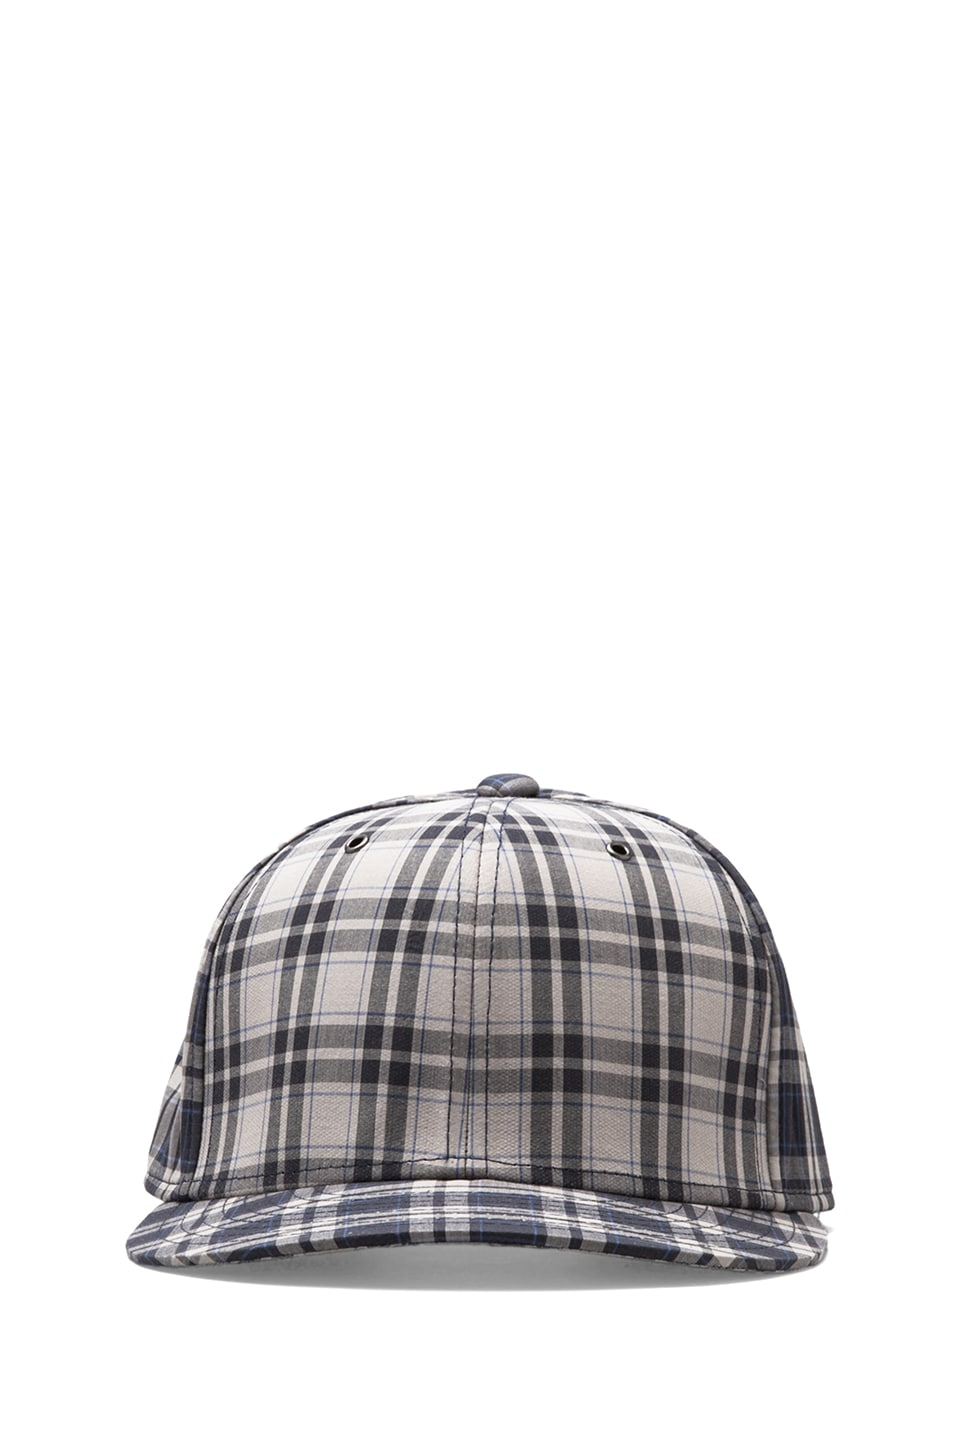 Marc by Marc Jacobs Harmony Plaid Hat in Blue Graphite Multi